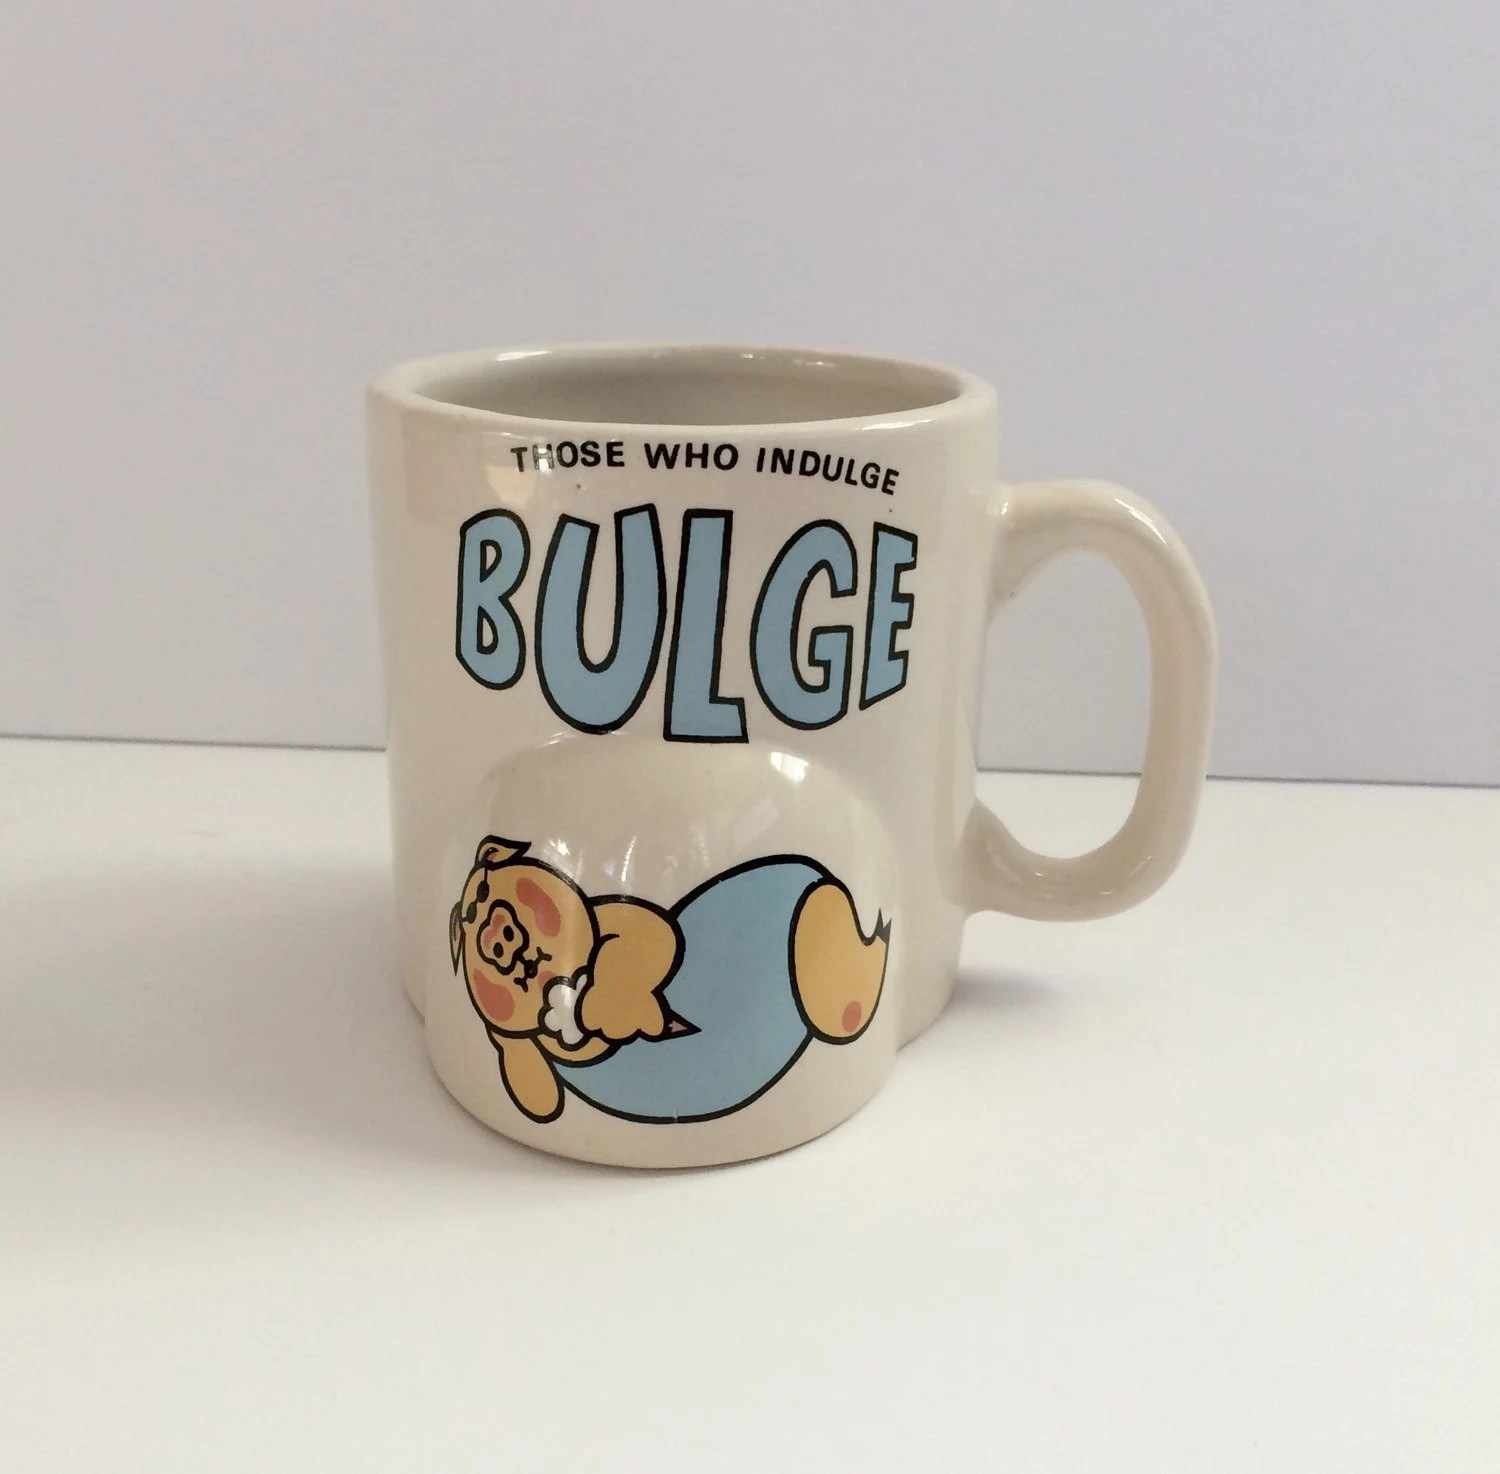 Odd Shaped Coffee Mugs Those Who Indulge Bulge Unique Coffee Mug By Rainbowthrifters